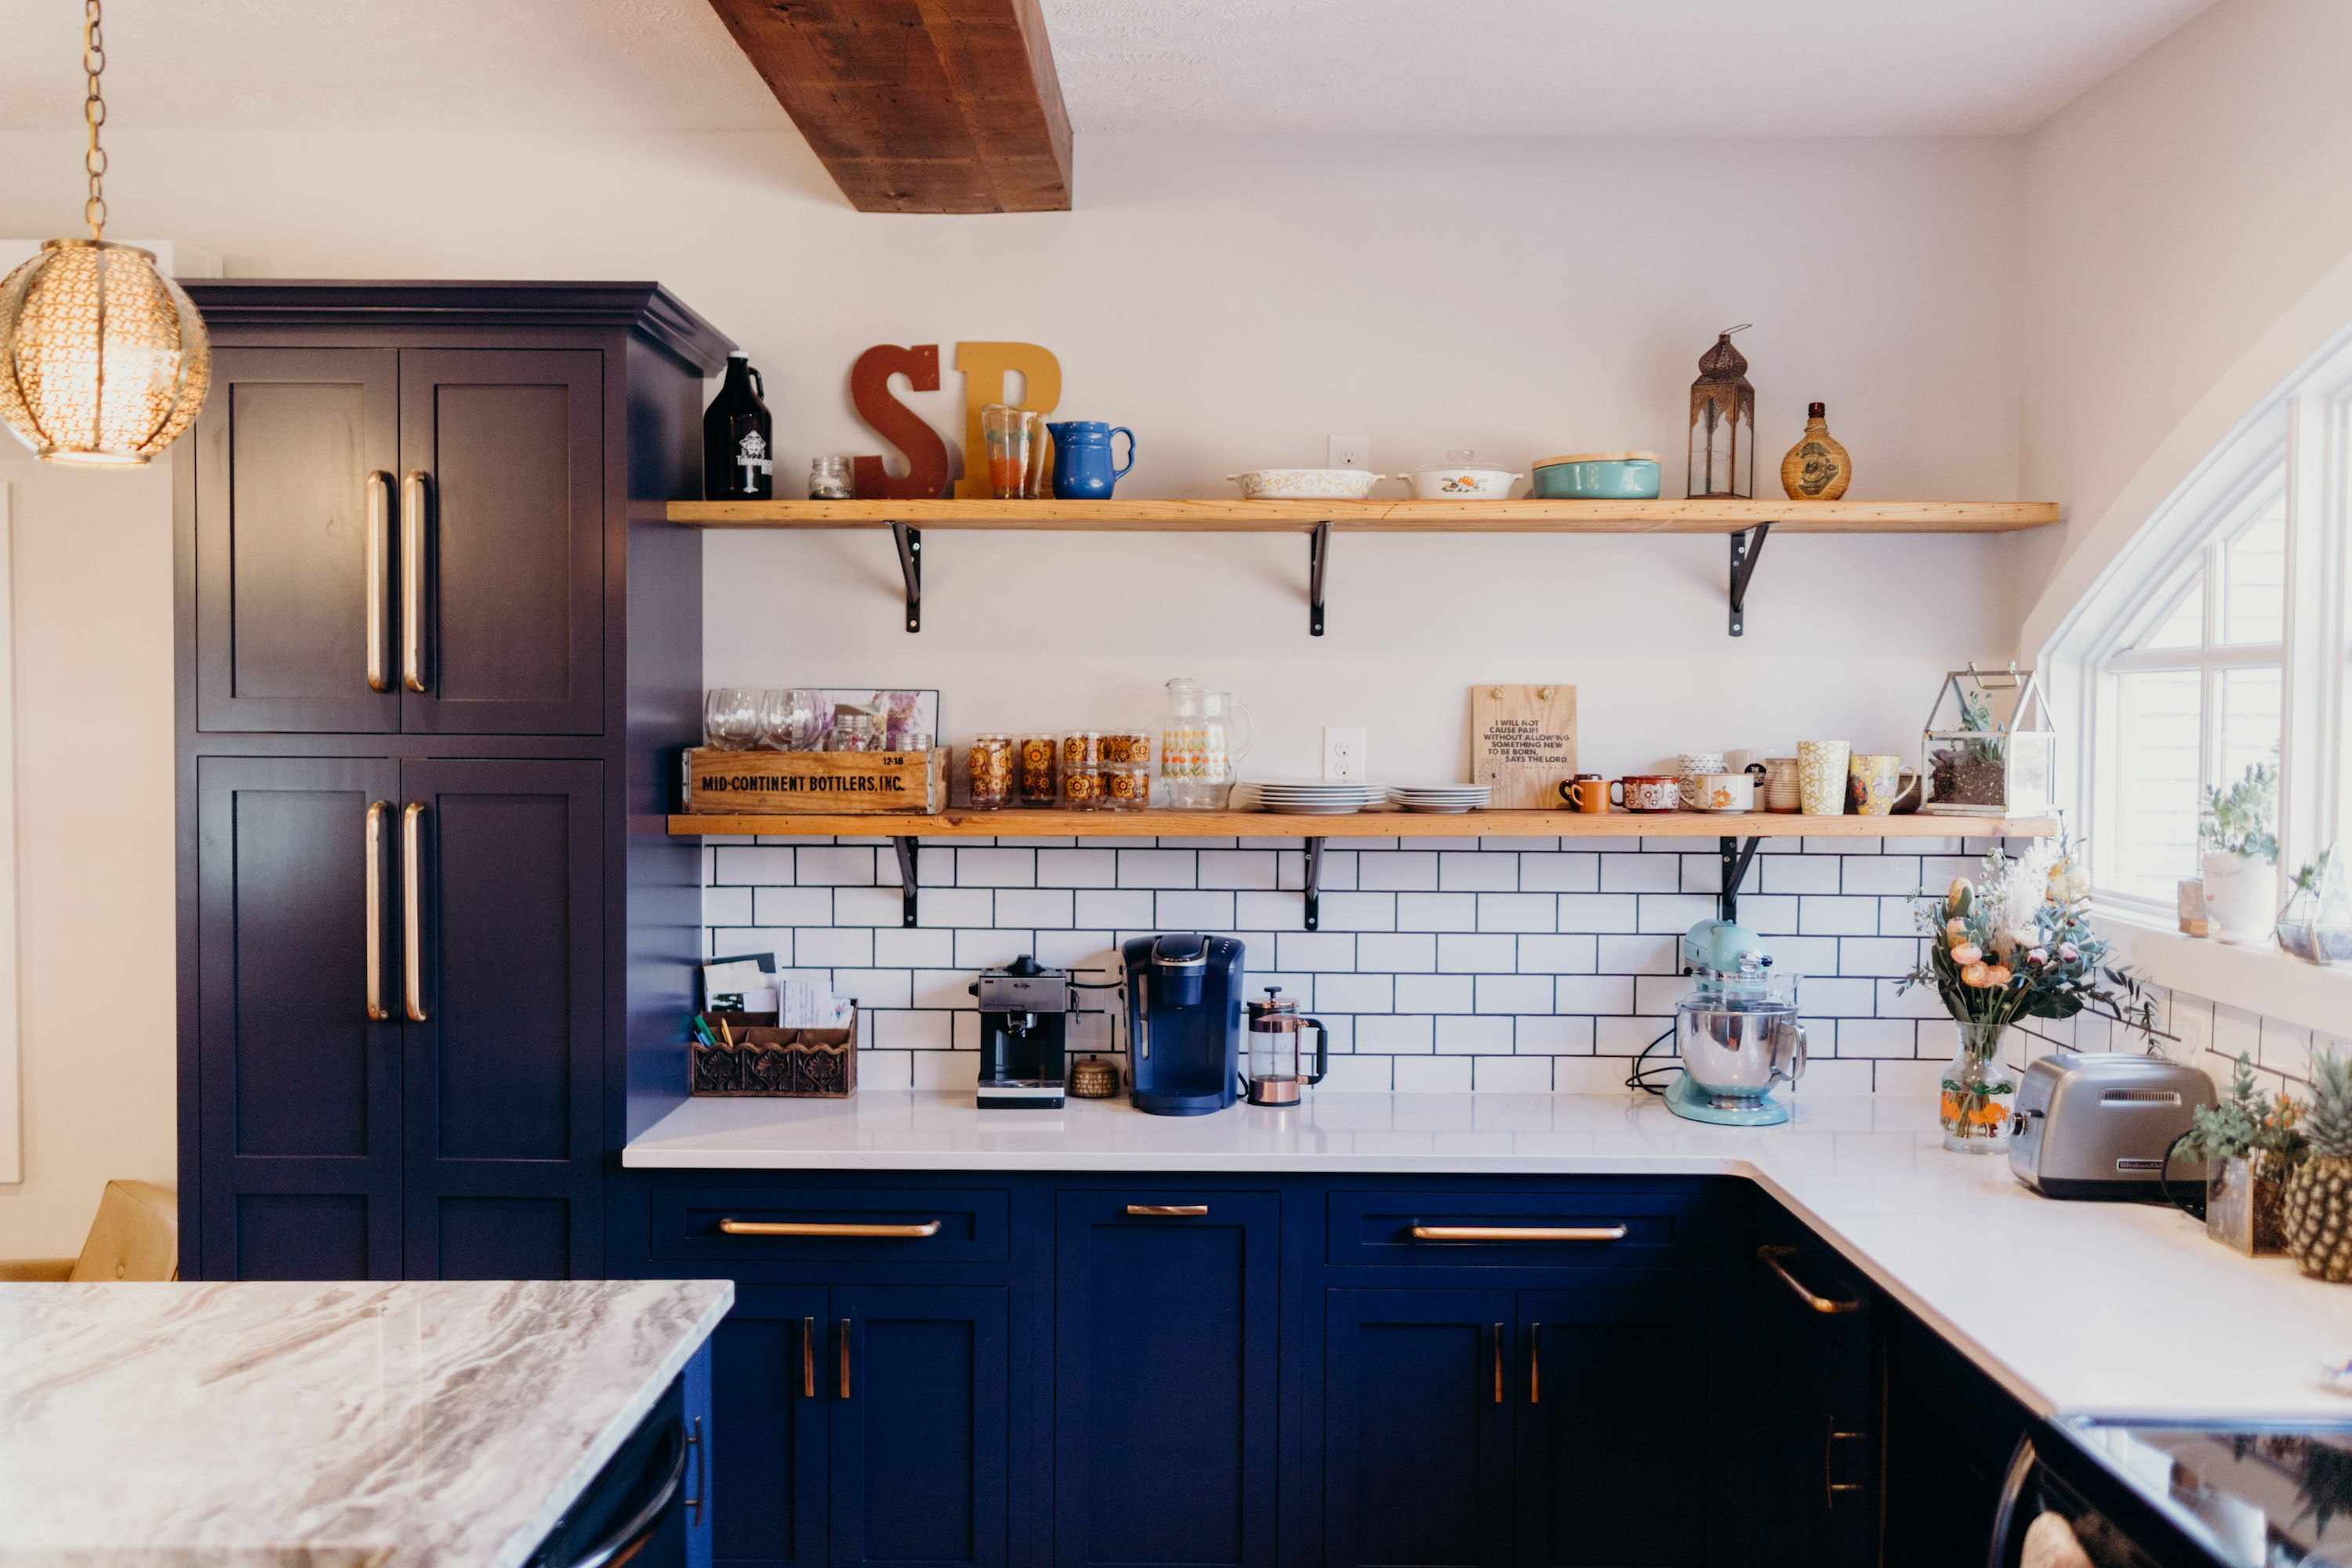 Reclaimed Wood Open Shelves Reclaimed From Original Floor Joists Used In This Home Remodel Open Shelving Home